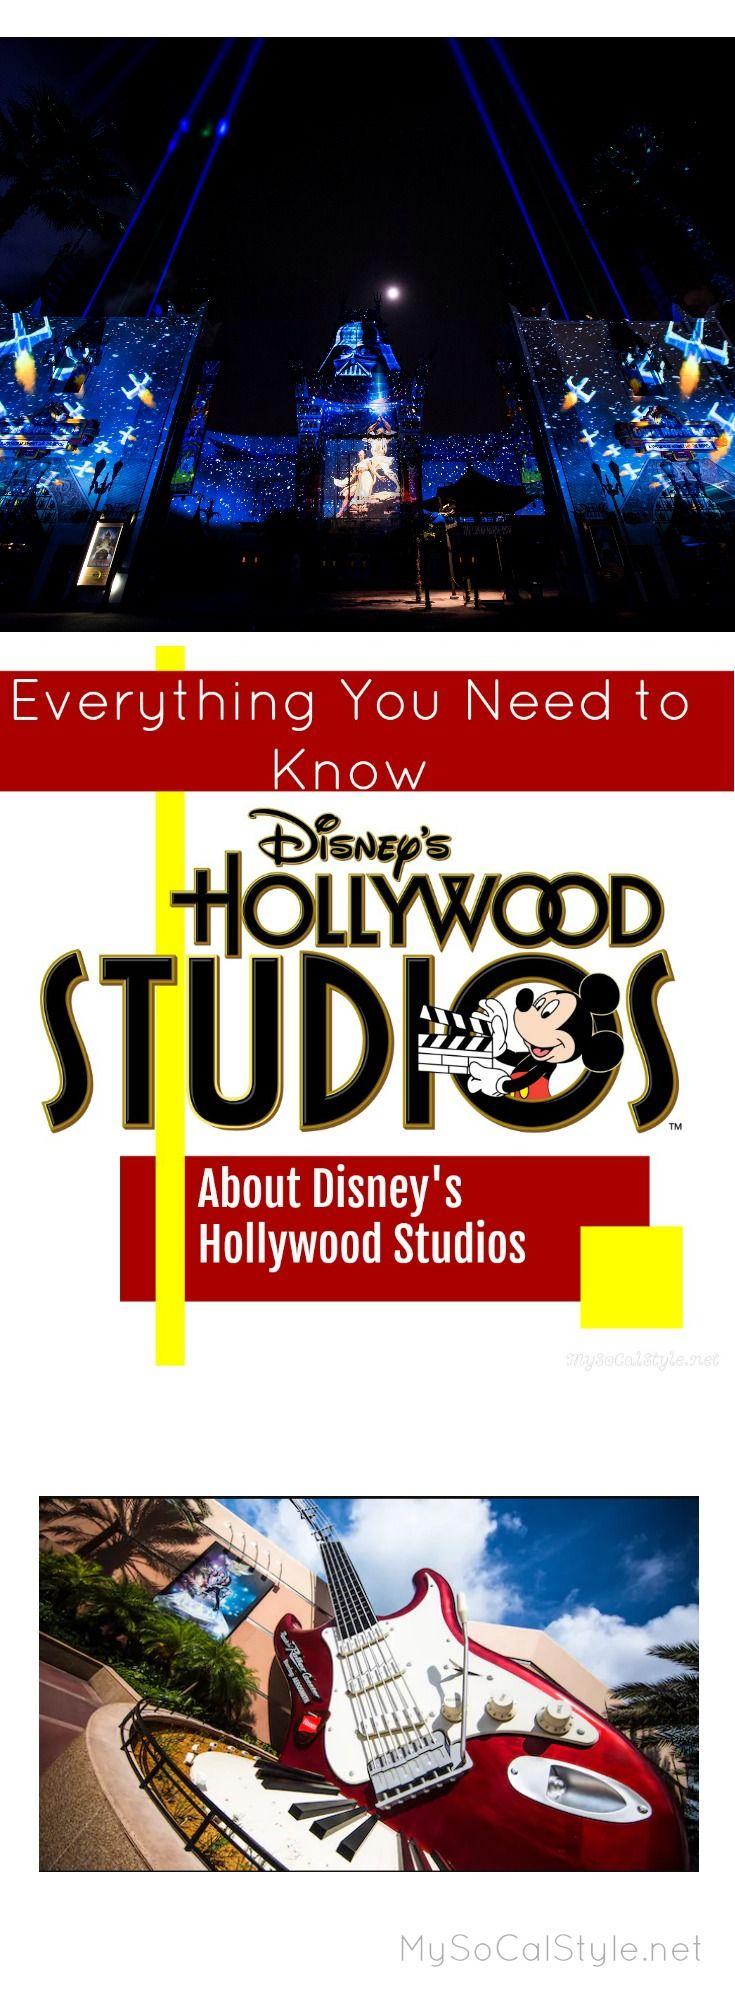 Curious about Disney's Hollywood Studios? Here's everything you need to know! #Disney #Hollywood